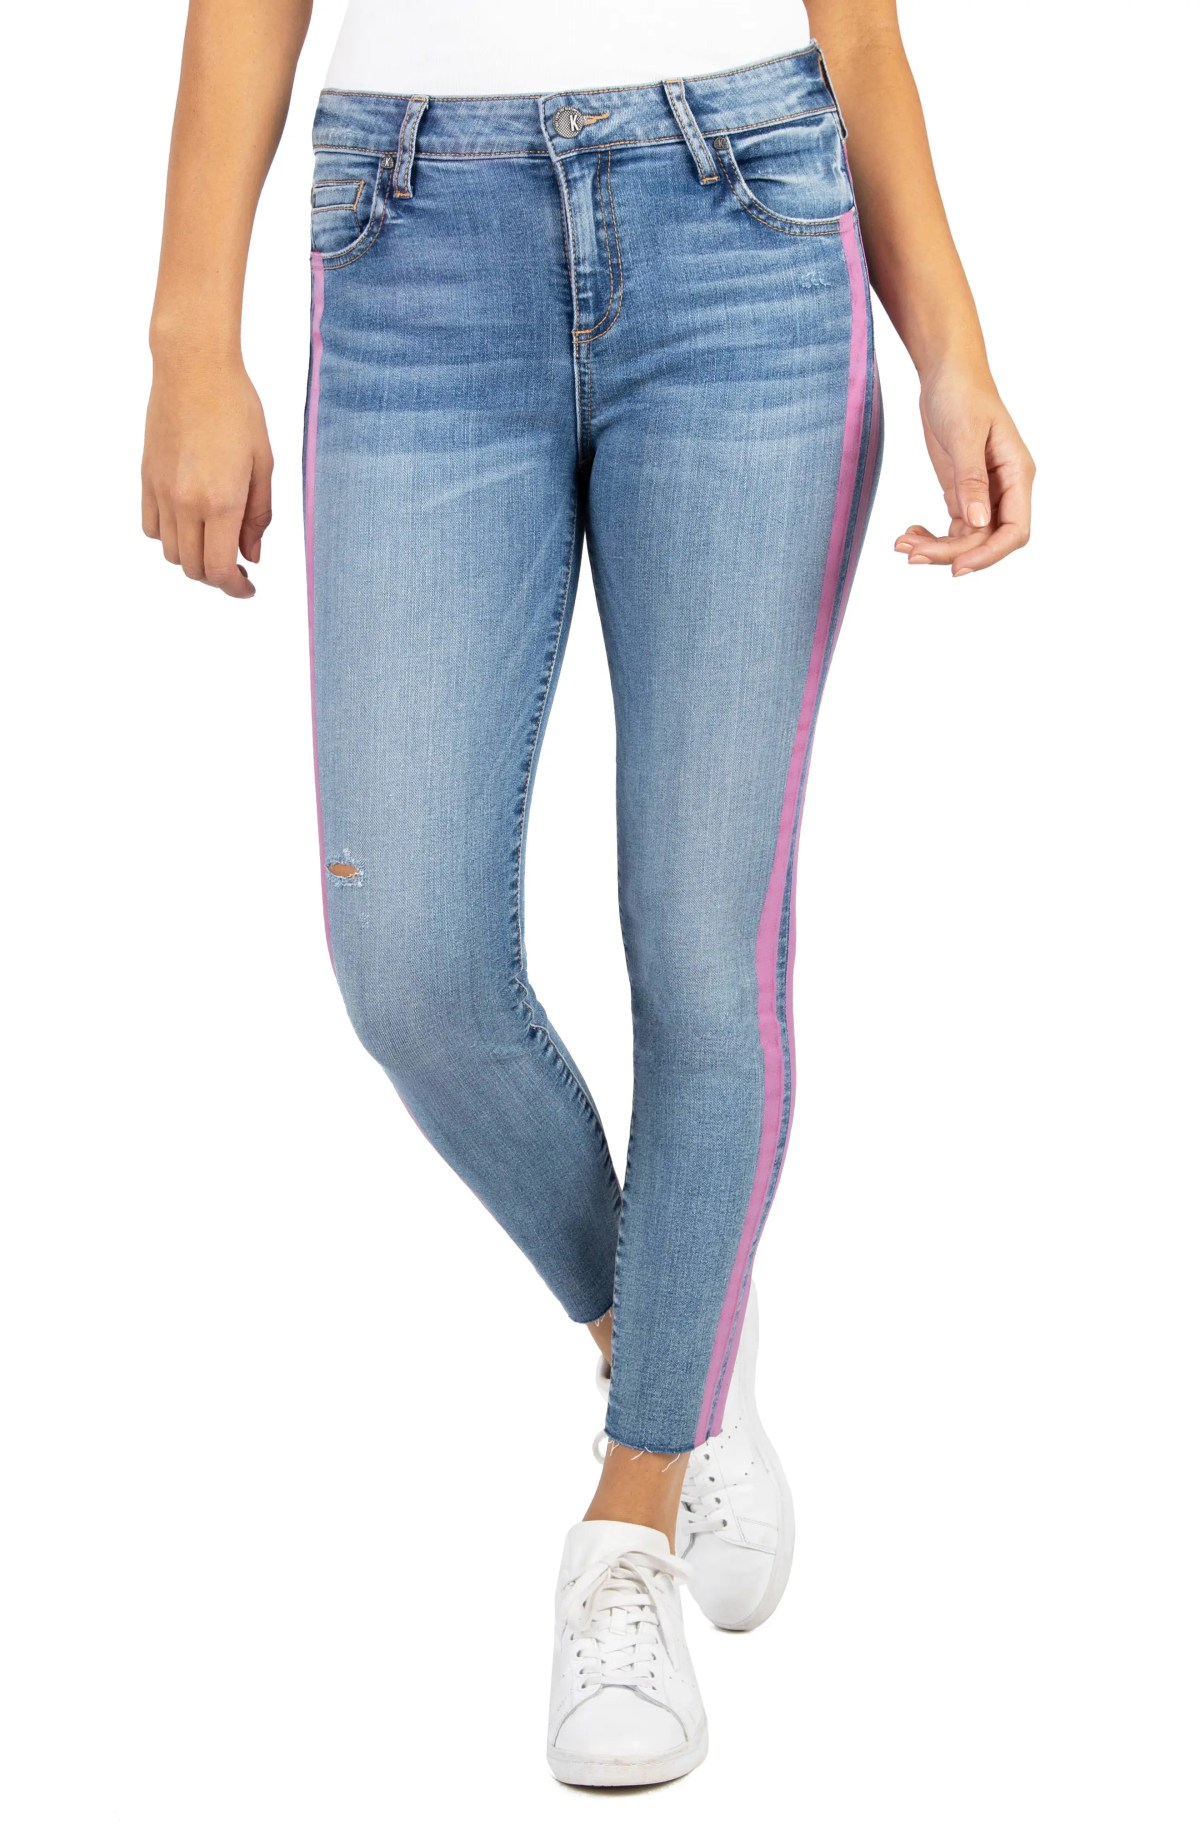 KUT FROM THE KLOTH Connie High Waist Side Stripe Ankle Skinny Jeans, Main, color, WISHING